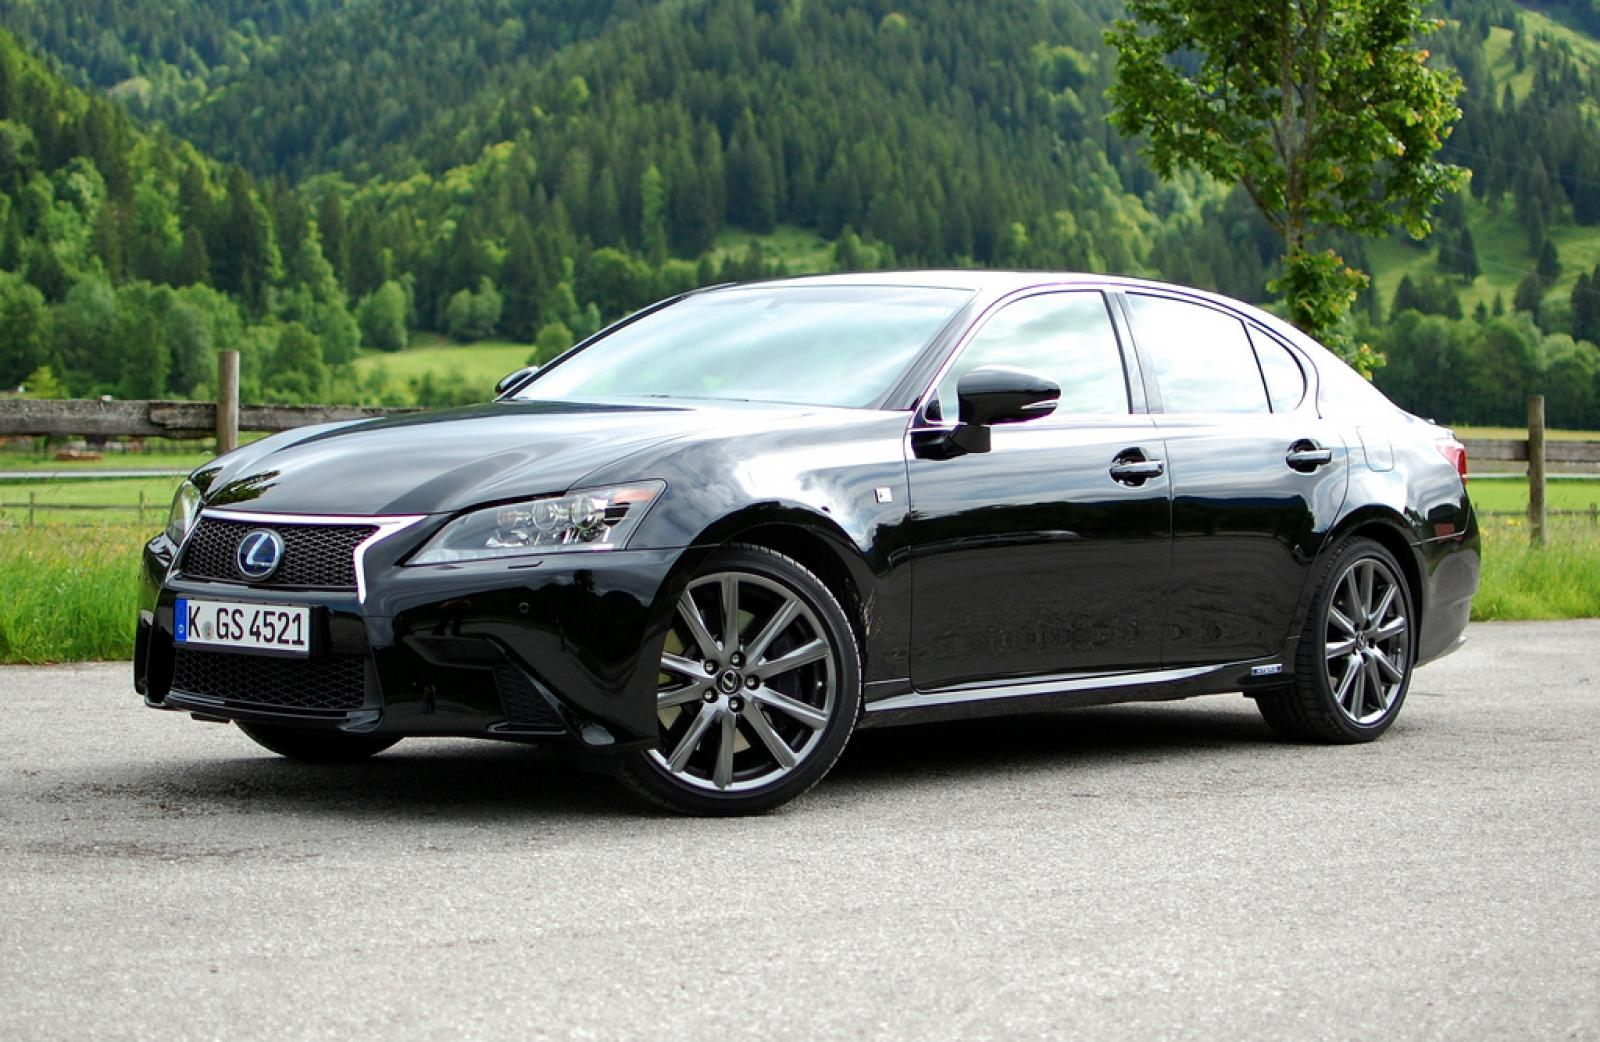 2015 lexus gs 450h information and photos zombiedrive. Black Bedroom Furniture Sets. Home Design Ideas